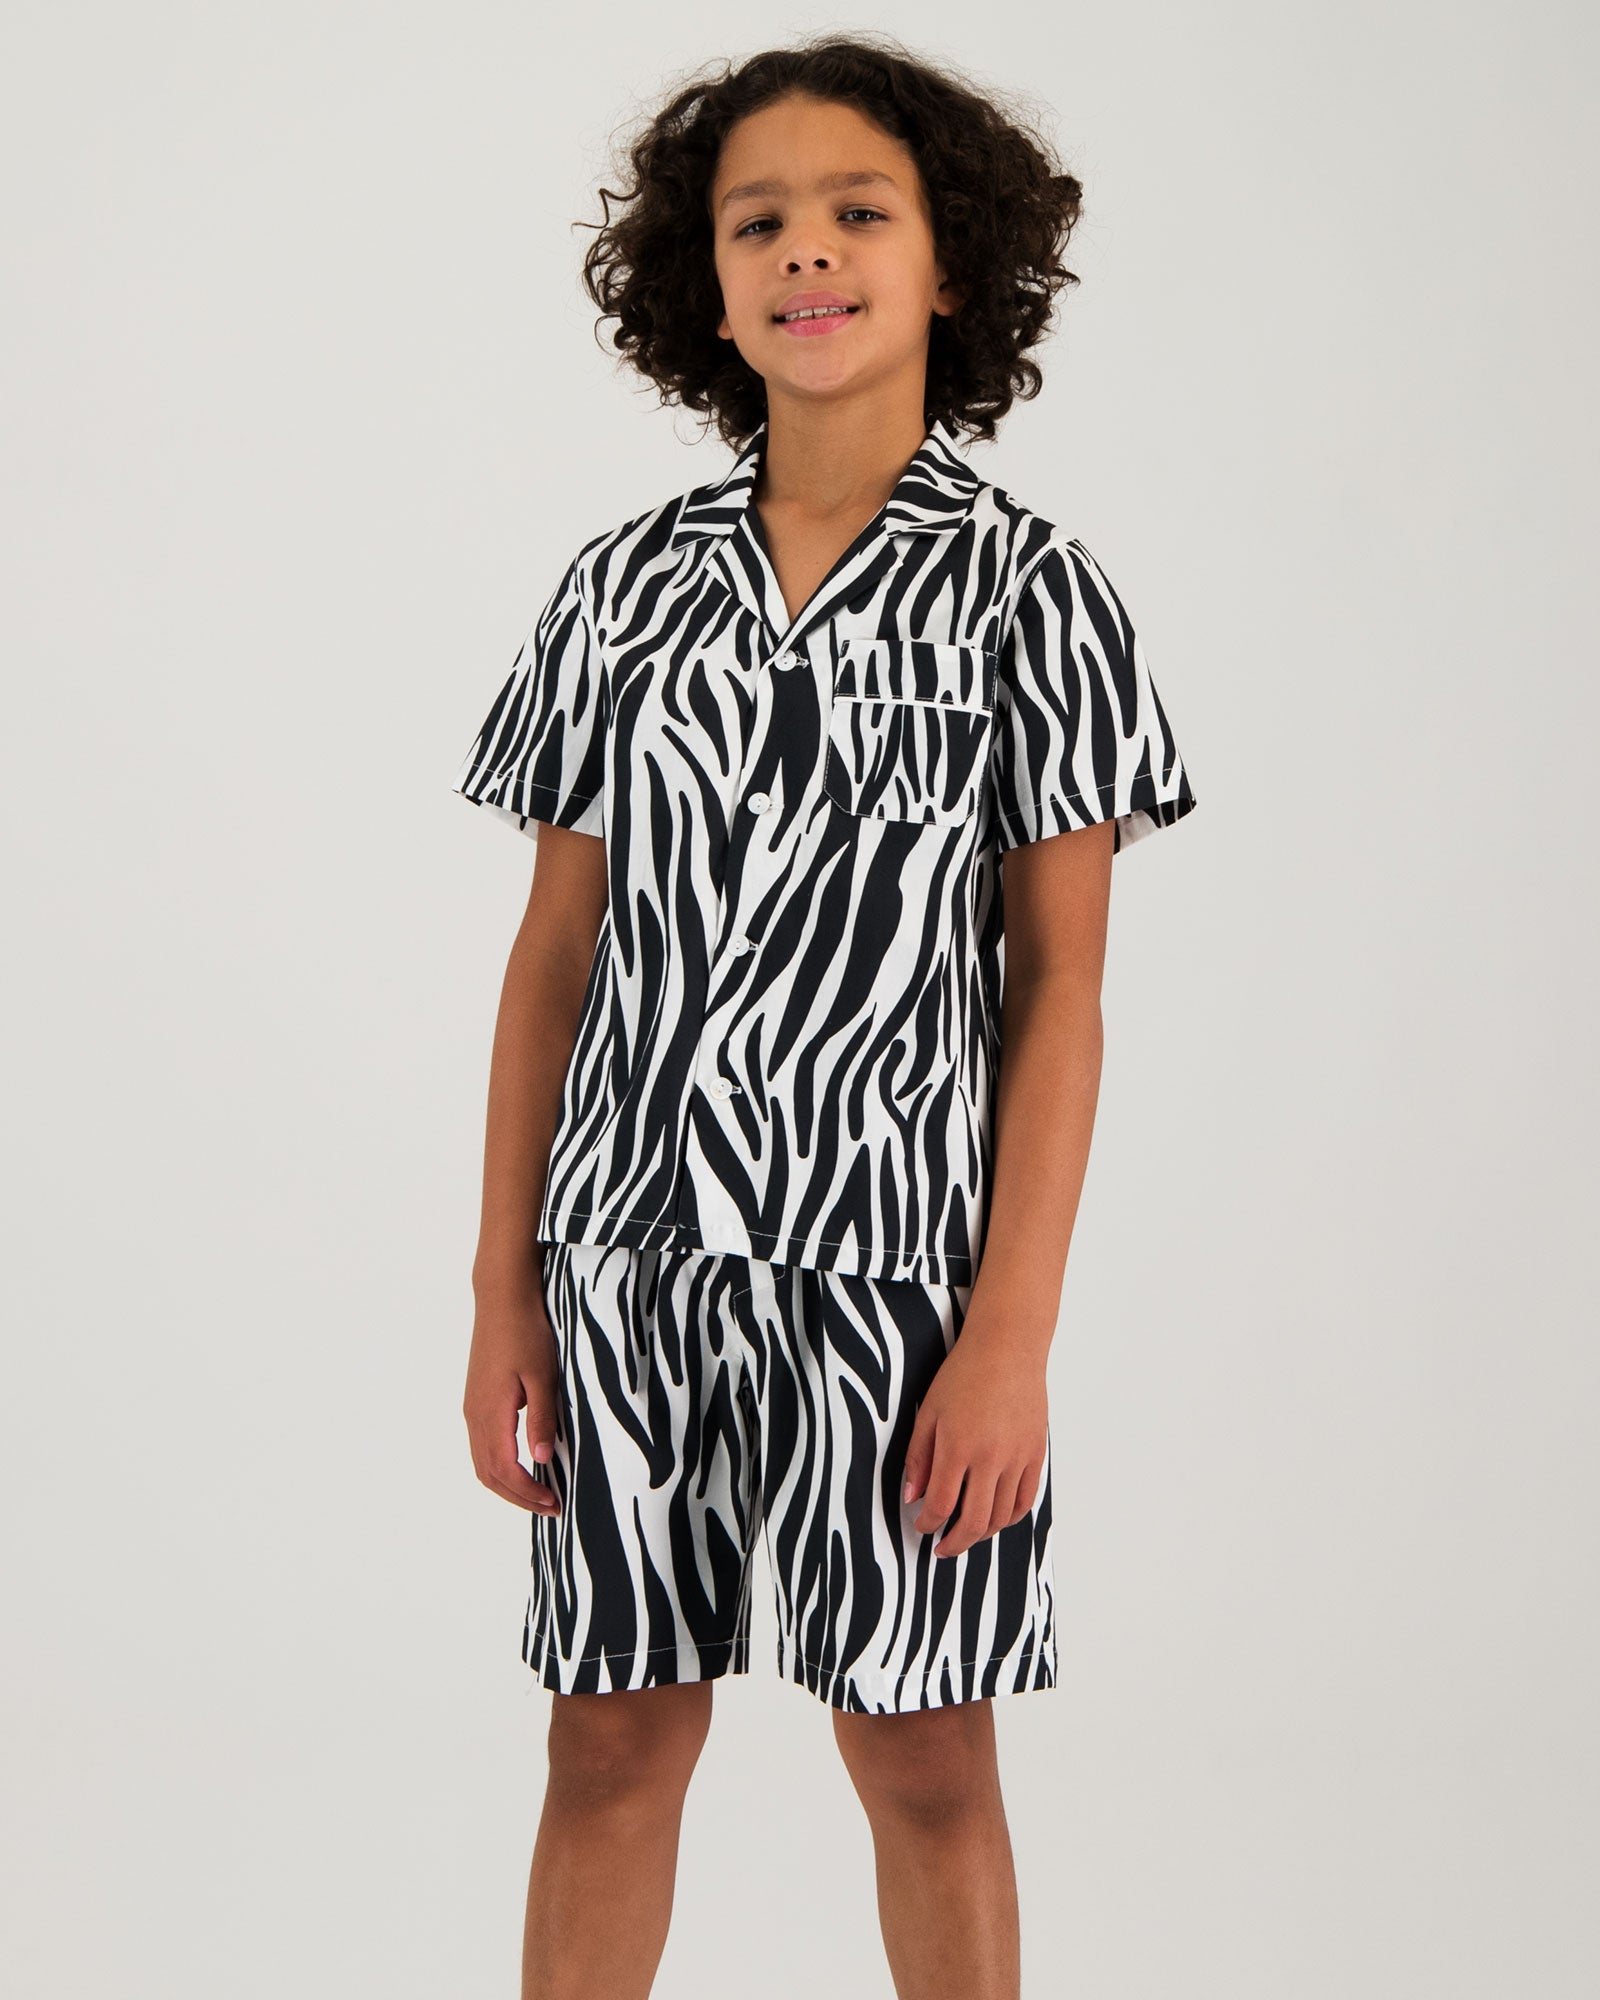 Boys Short Pyjamas - Zebra